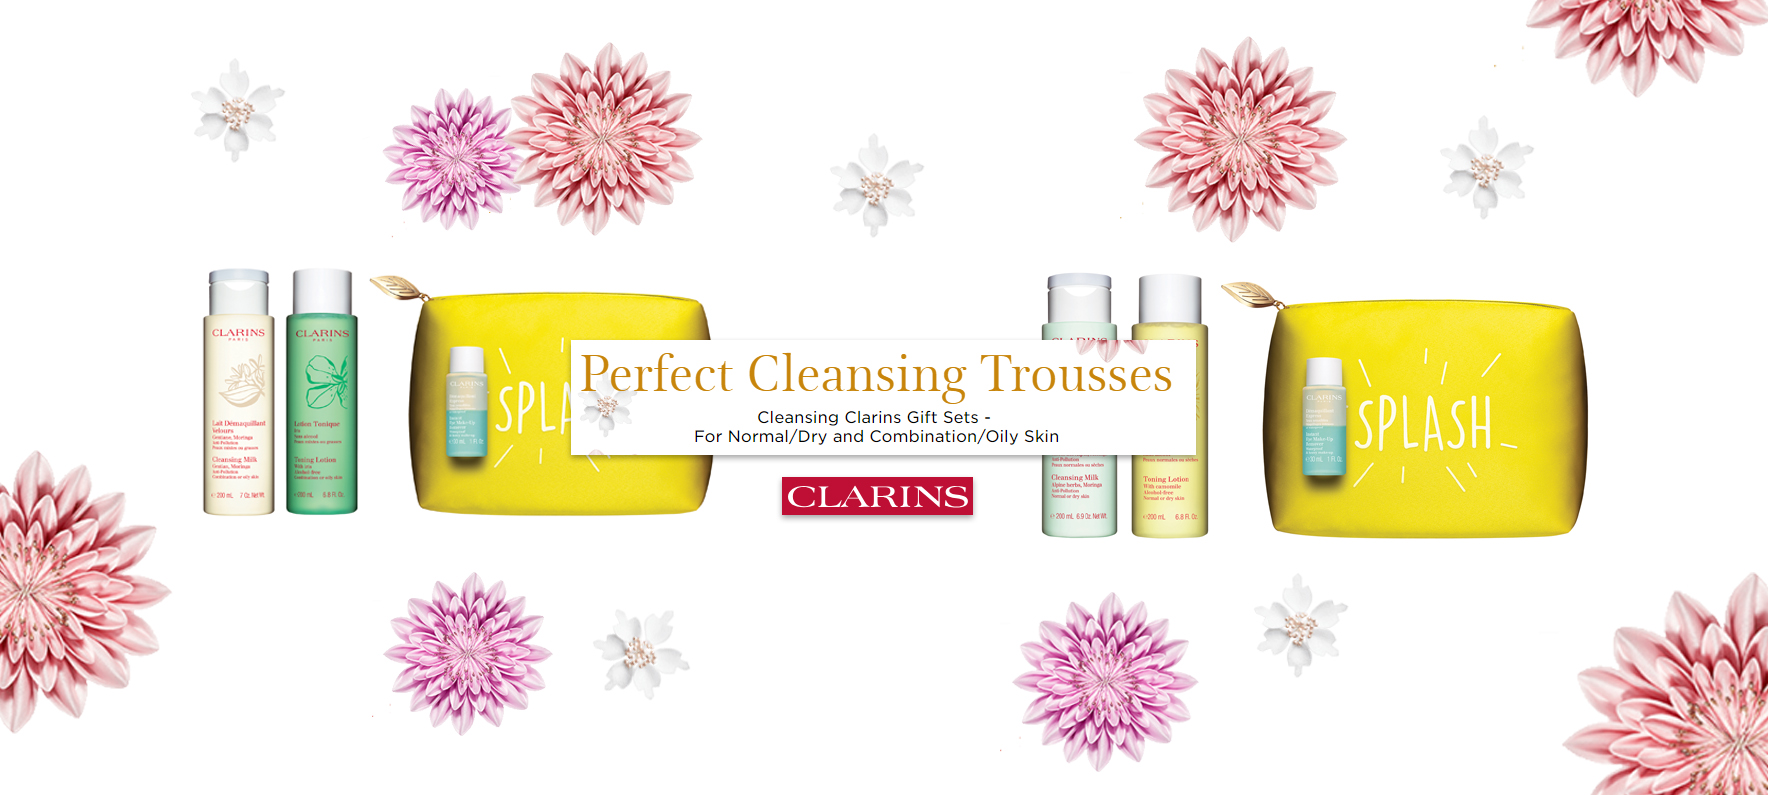 Clarins Perfect Cleansing Trousses Gift Set Splash Banner 2019